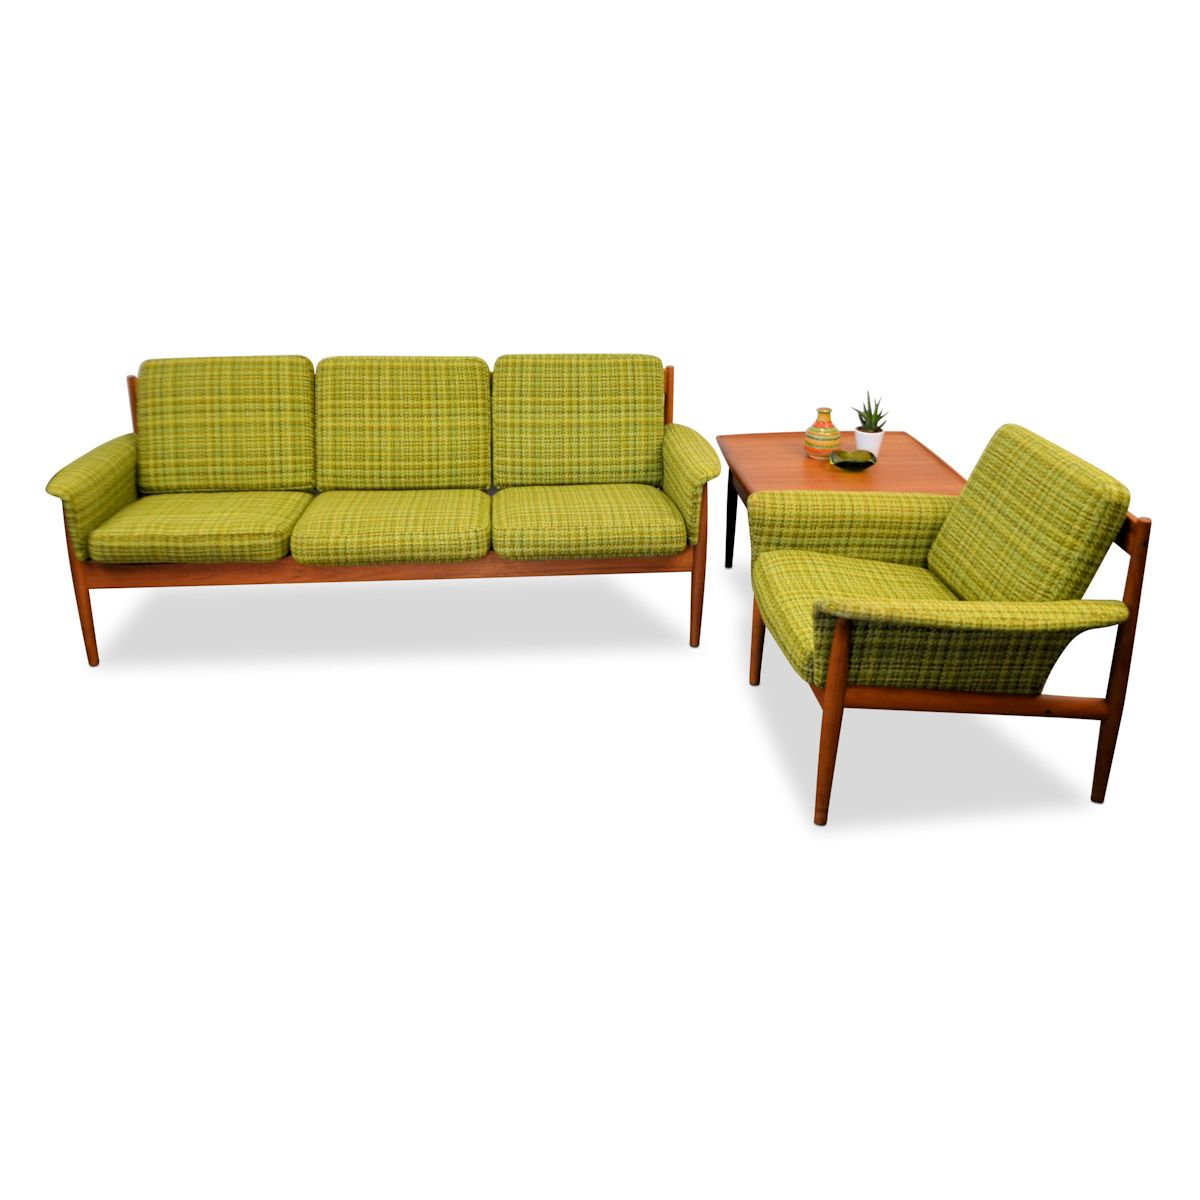 Zweeds Design Bank.Vintage Three Seater Sofa By Grete Jalk Vintage Vibes